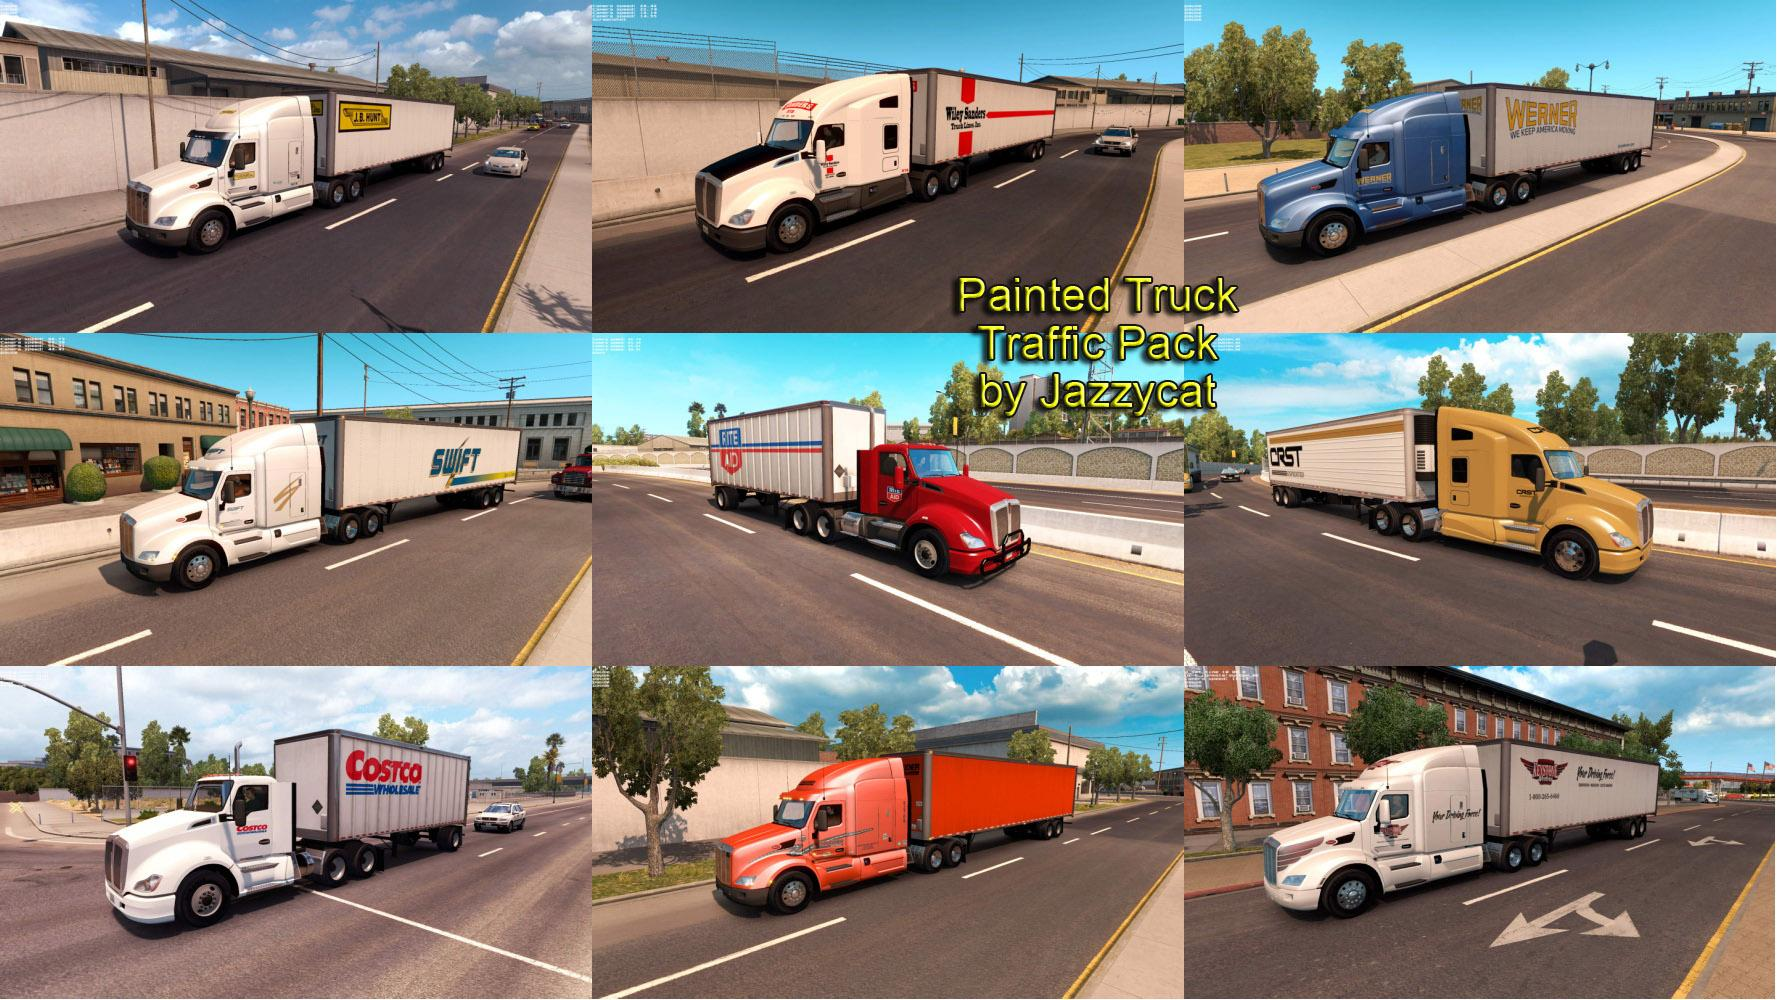 PAINTED TRUCK AND TRAILERS TRAFFIC PACK MOD BY JAZZYCAT V1 1